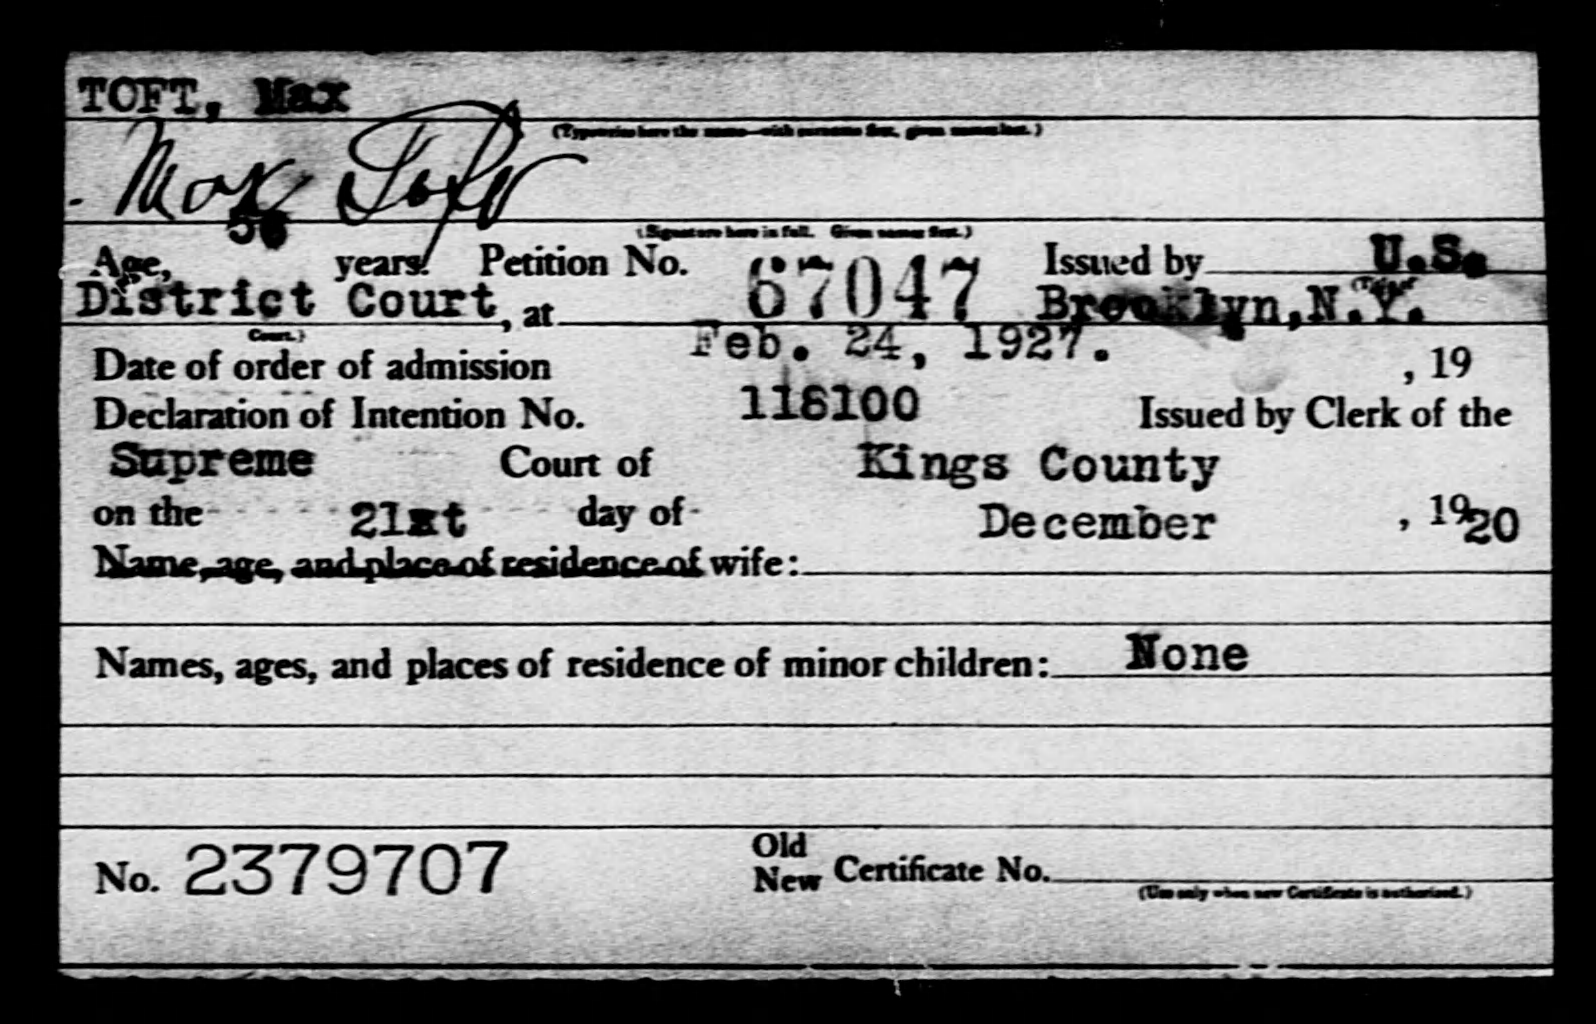 TOFT, Max - Born: [BLANK], Naturalized: 1927